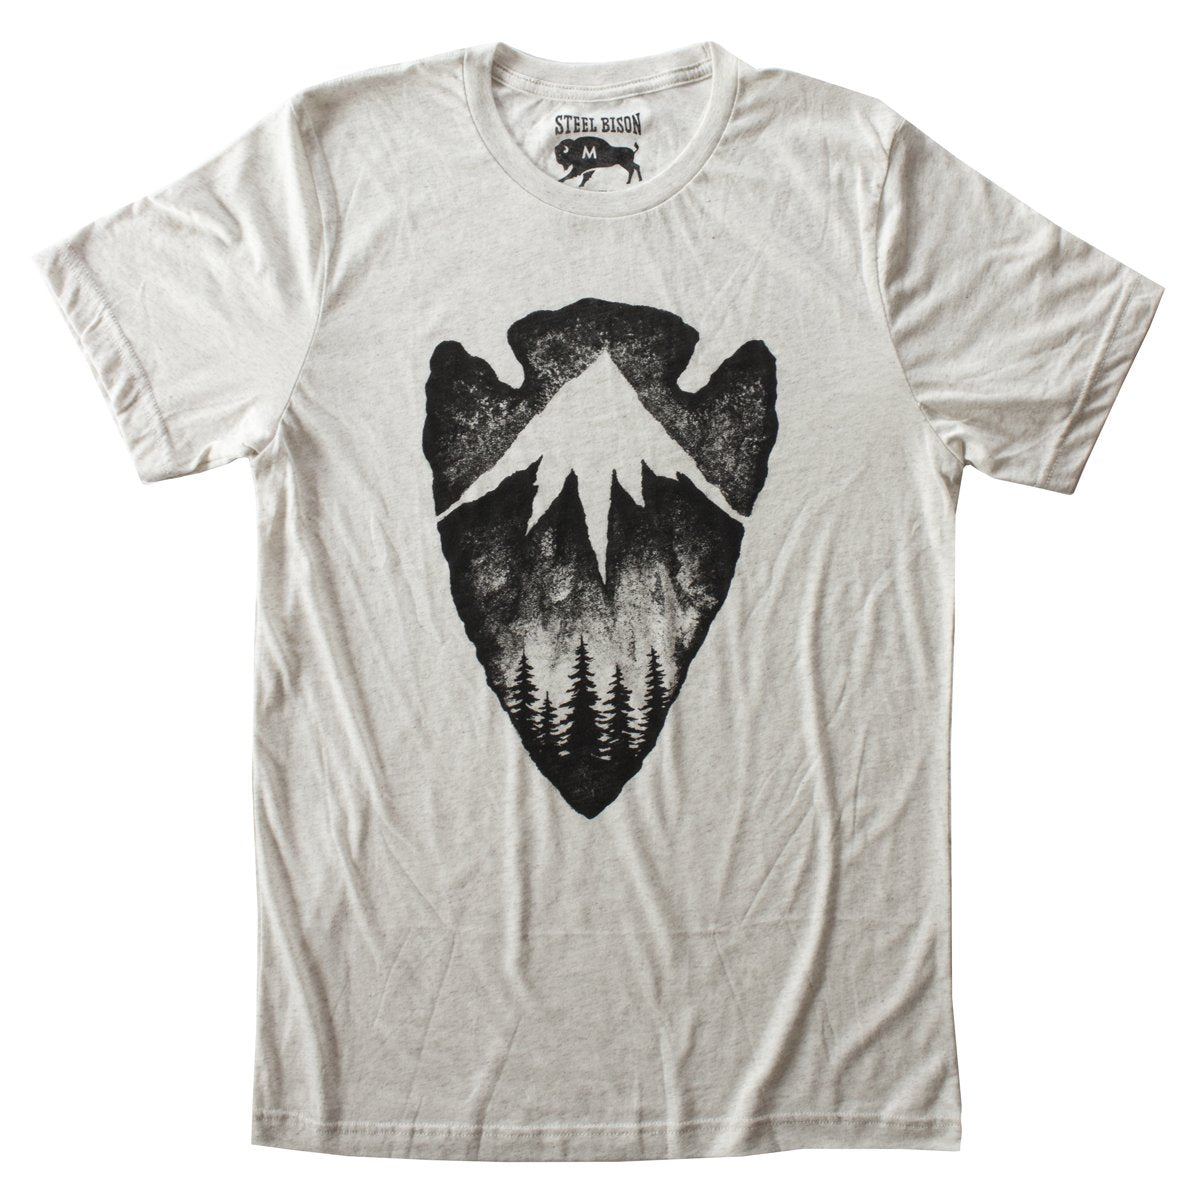 Heritage T-shirt (Oatmeal)